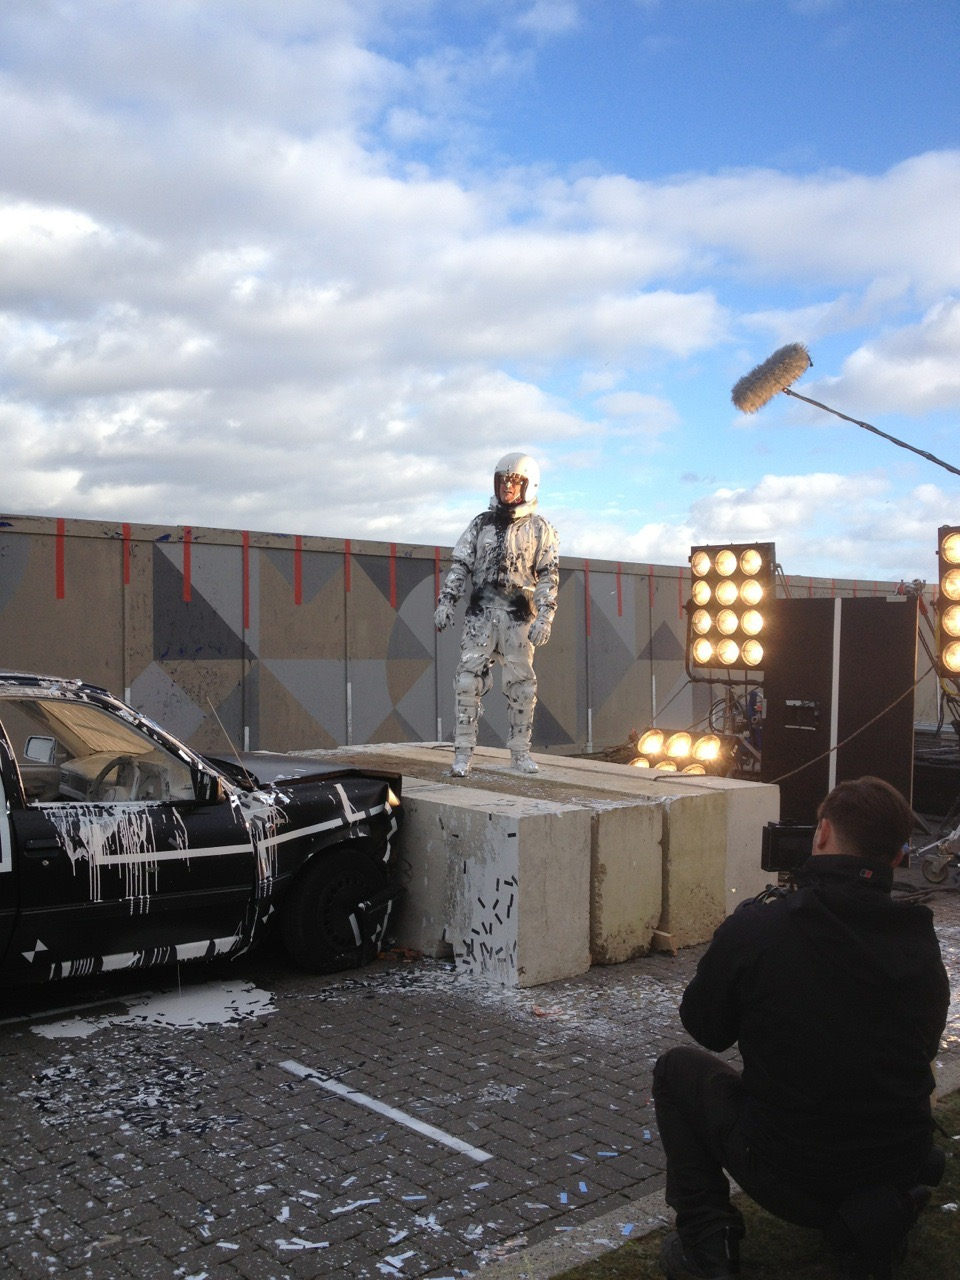 Filming Still yourself and calm your boots 2014 on location at High House Production Park, Purfleet.